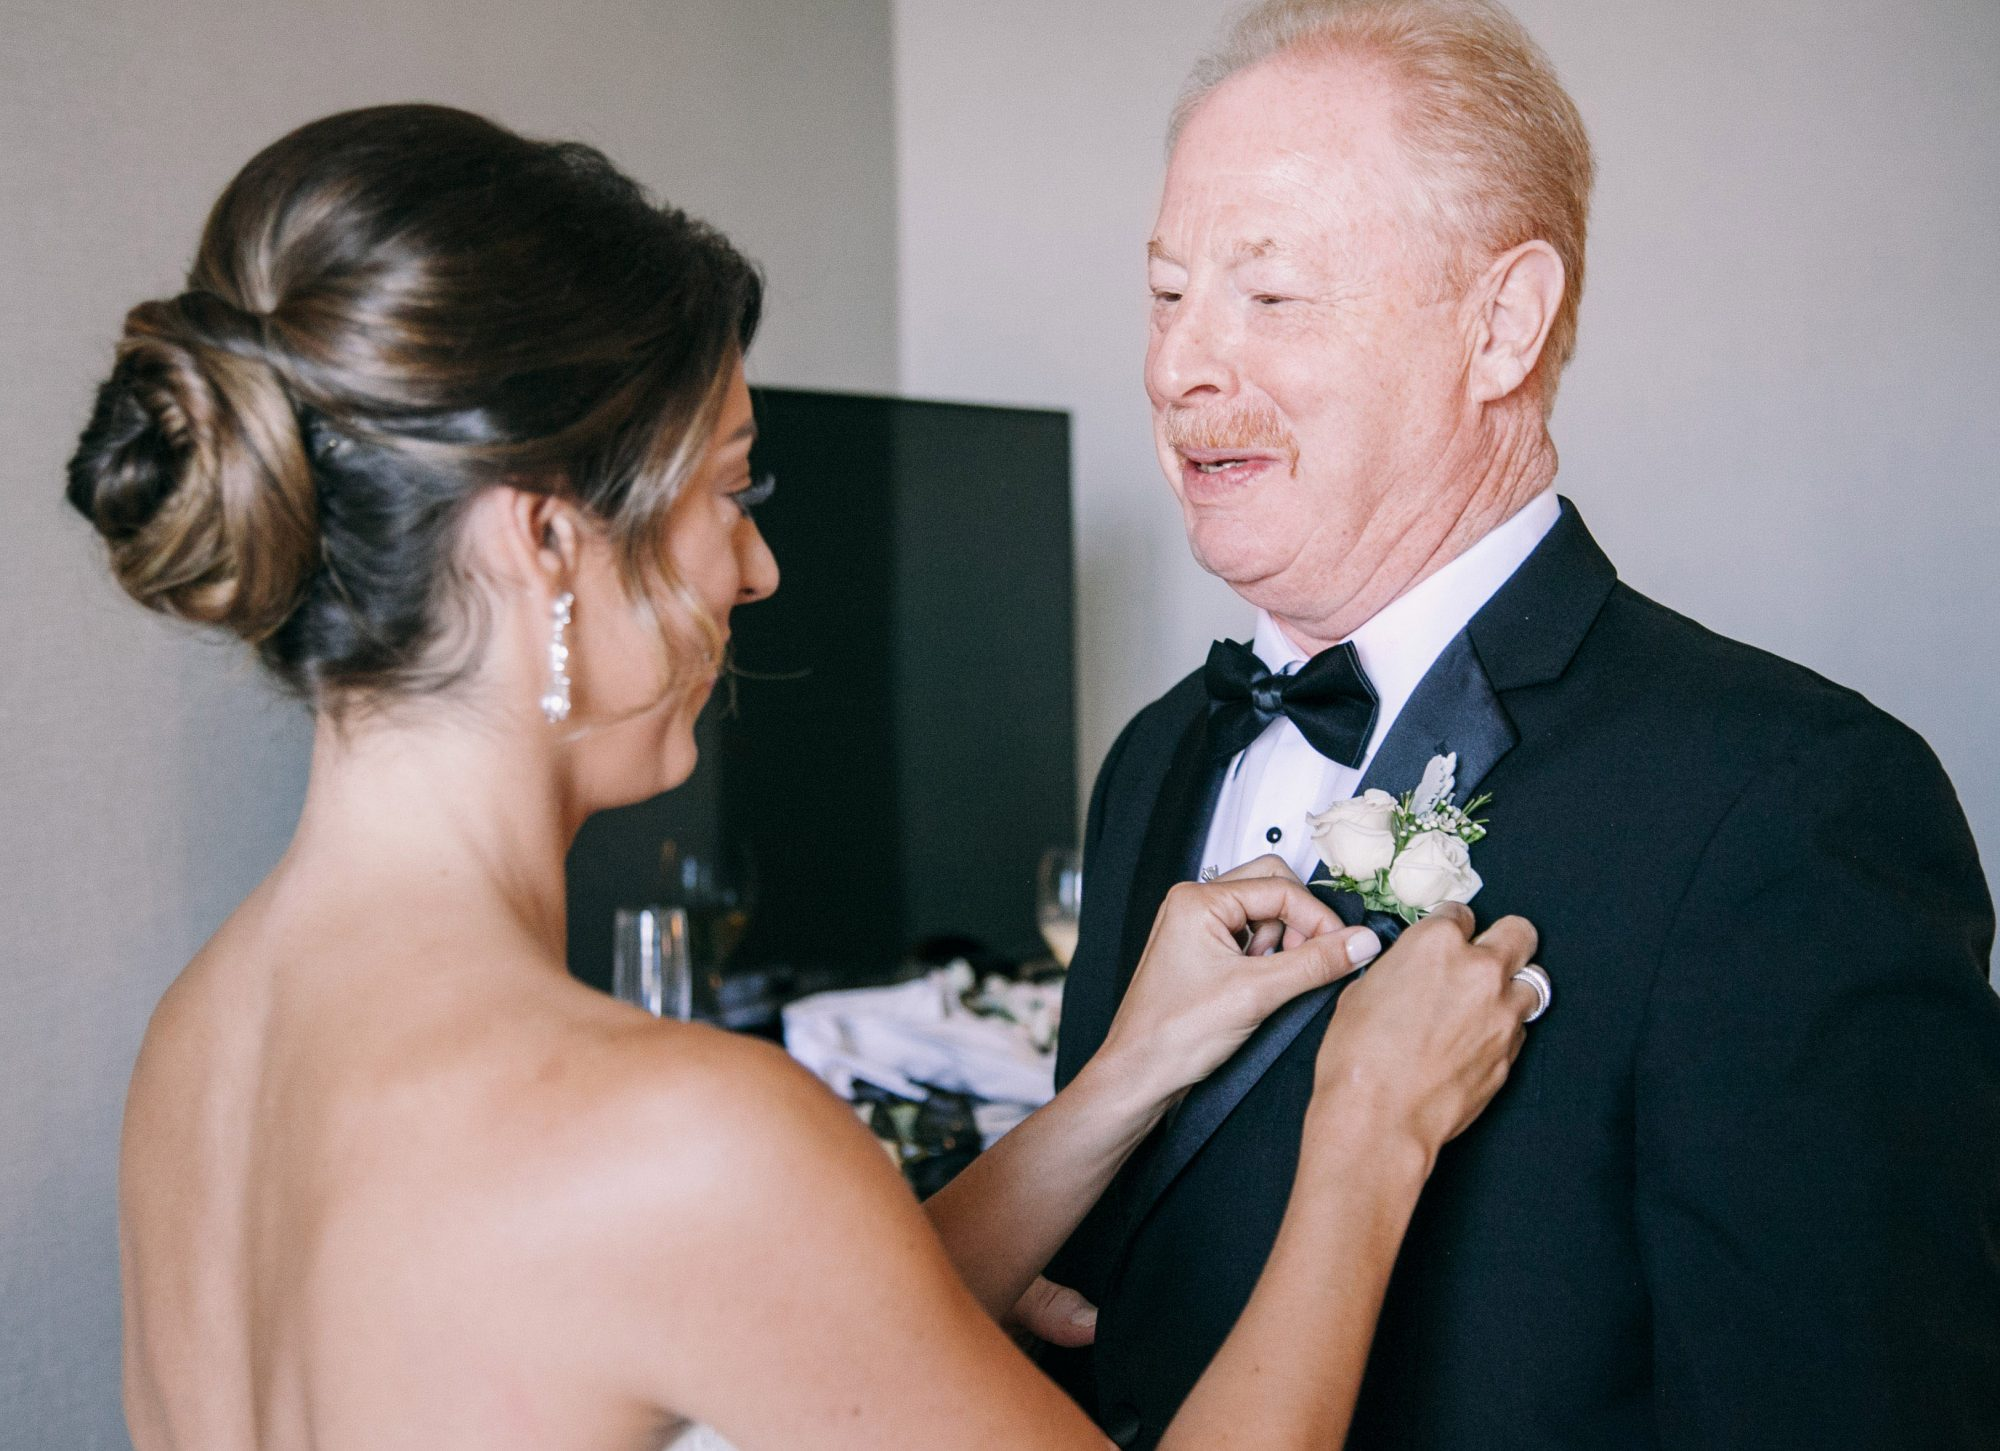 dad daughter wedding moment pinning boutonniere